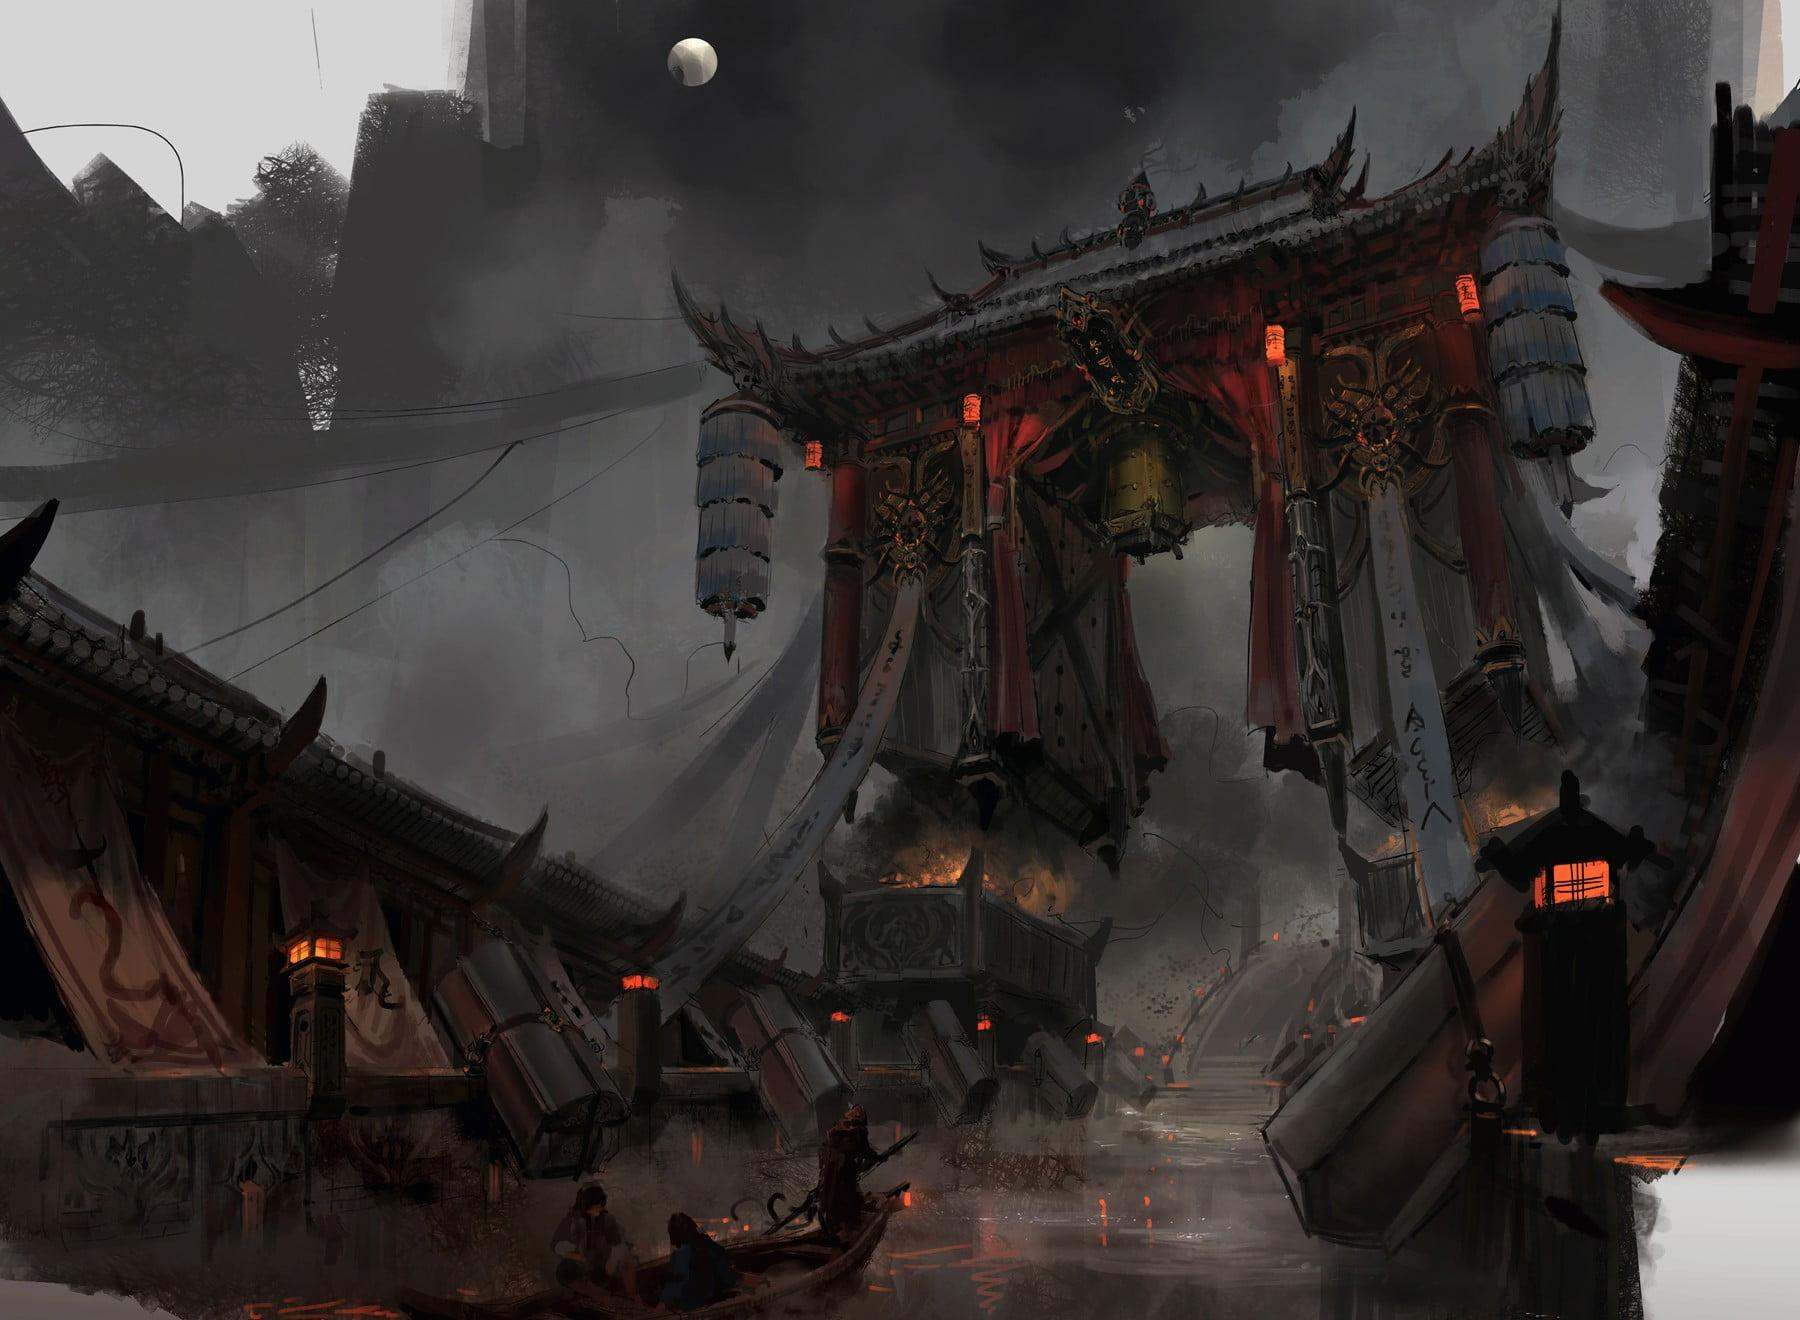 Torii gate digital wallpaper, artwork, digital art HD wallpapers